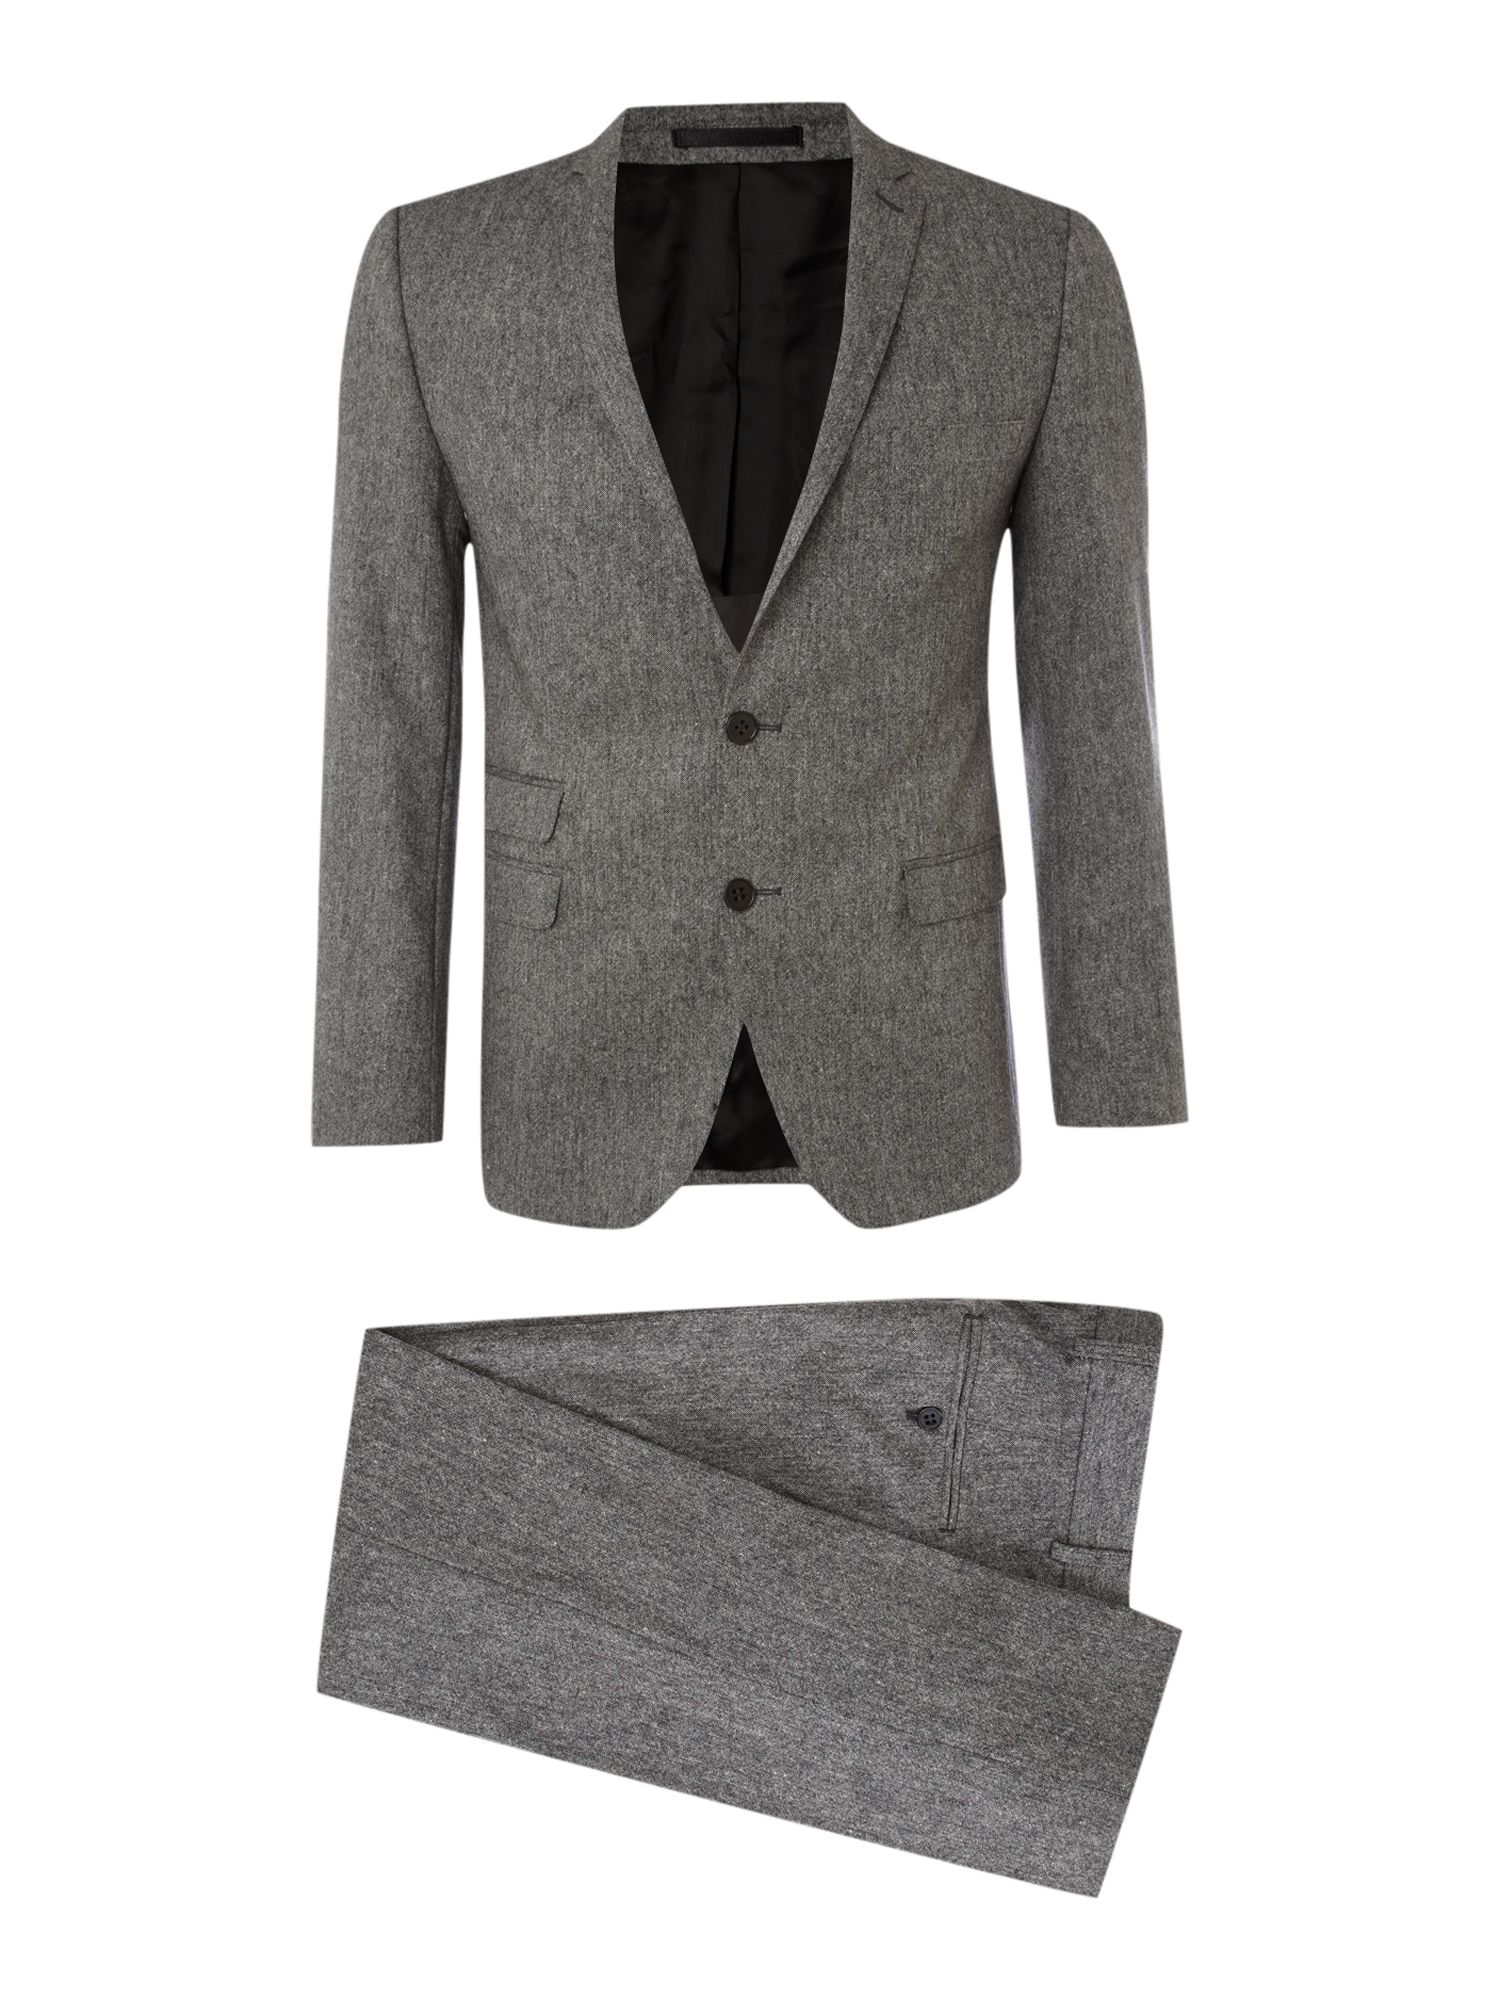 Semi plain camden fit suit